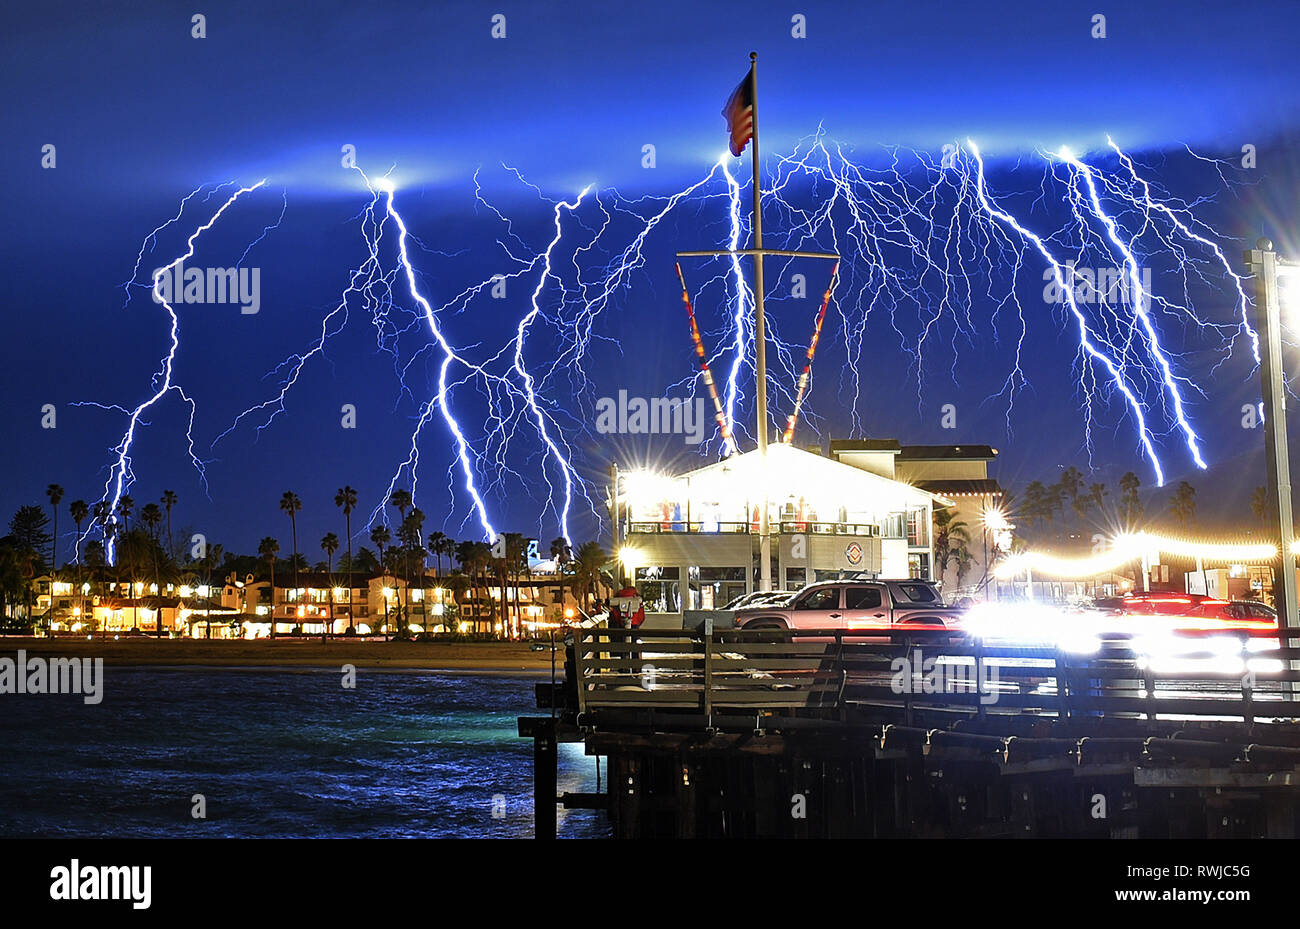 Los Angeles, California, USA. 6th Mar, 2019. A time exposure captures a series of lightning strikes above Stearns Wharf in Santa Barbara. An atmospheric river fueled winter storm slammed the region with heavy rain, hail and thunderstorms overnight, producing a stunning lightning shows in the Southern California sky. The latest storm in Californias wet winter, which dumped heavy rain on Santa Barbara County overnight, moved into Los Angeles County and orange counties Wednesday. Credit: Mike Eliason/Santa Barbara County Fire/ZUMA Wire/Alamy Live News - Stock Image